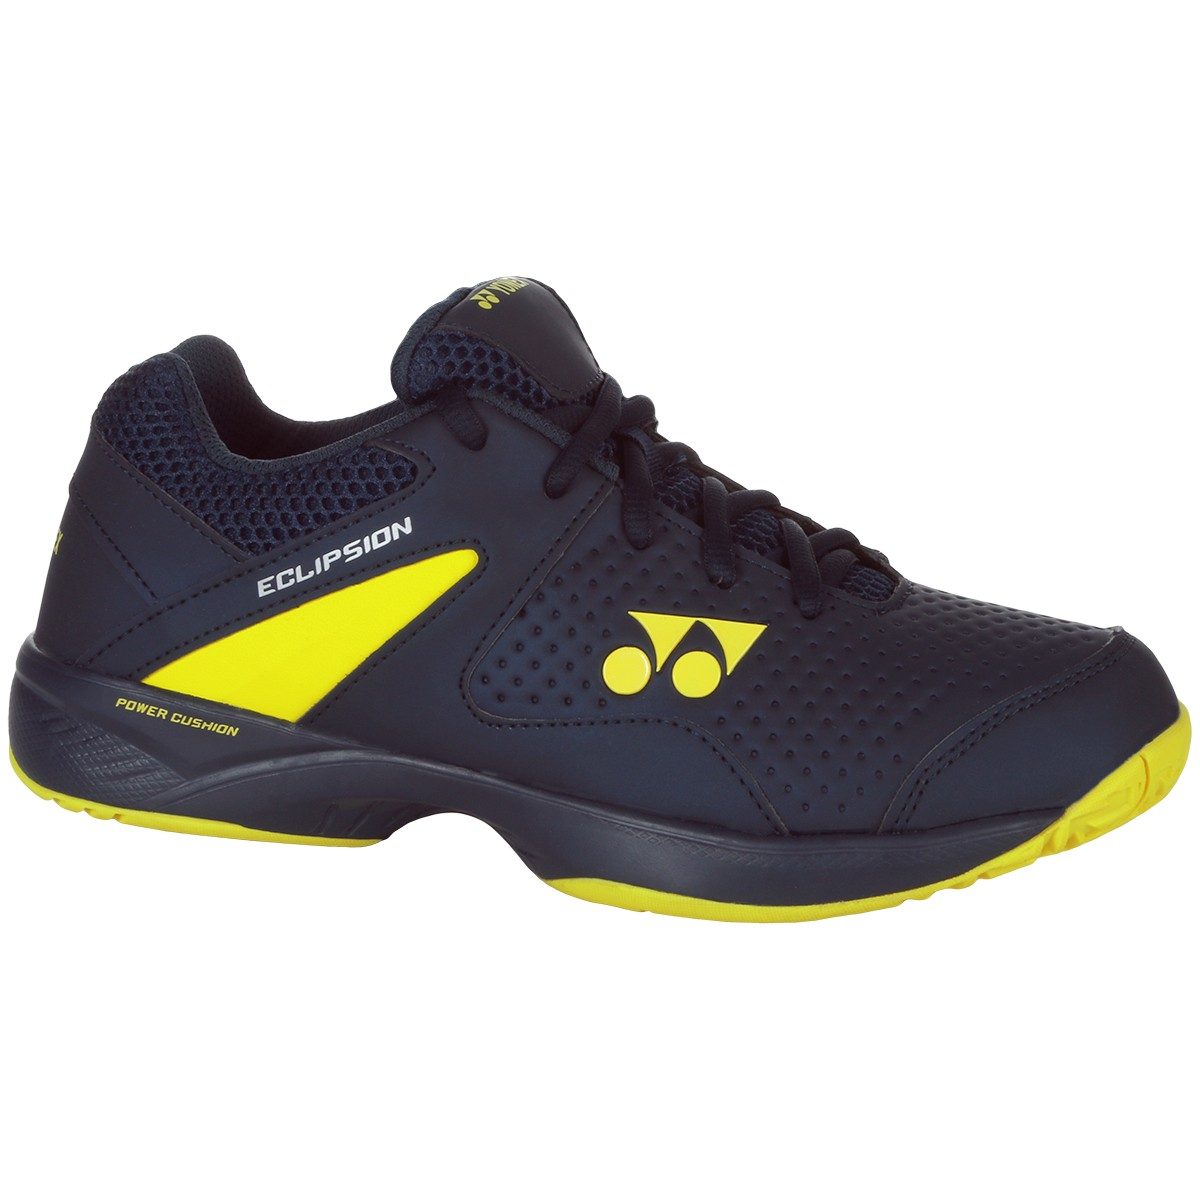 ZAPATILLAS YONEX JUNIOR POWER CUSHION ECLIPSION 2 TODAS LAS